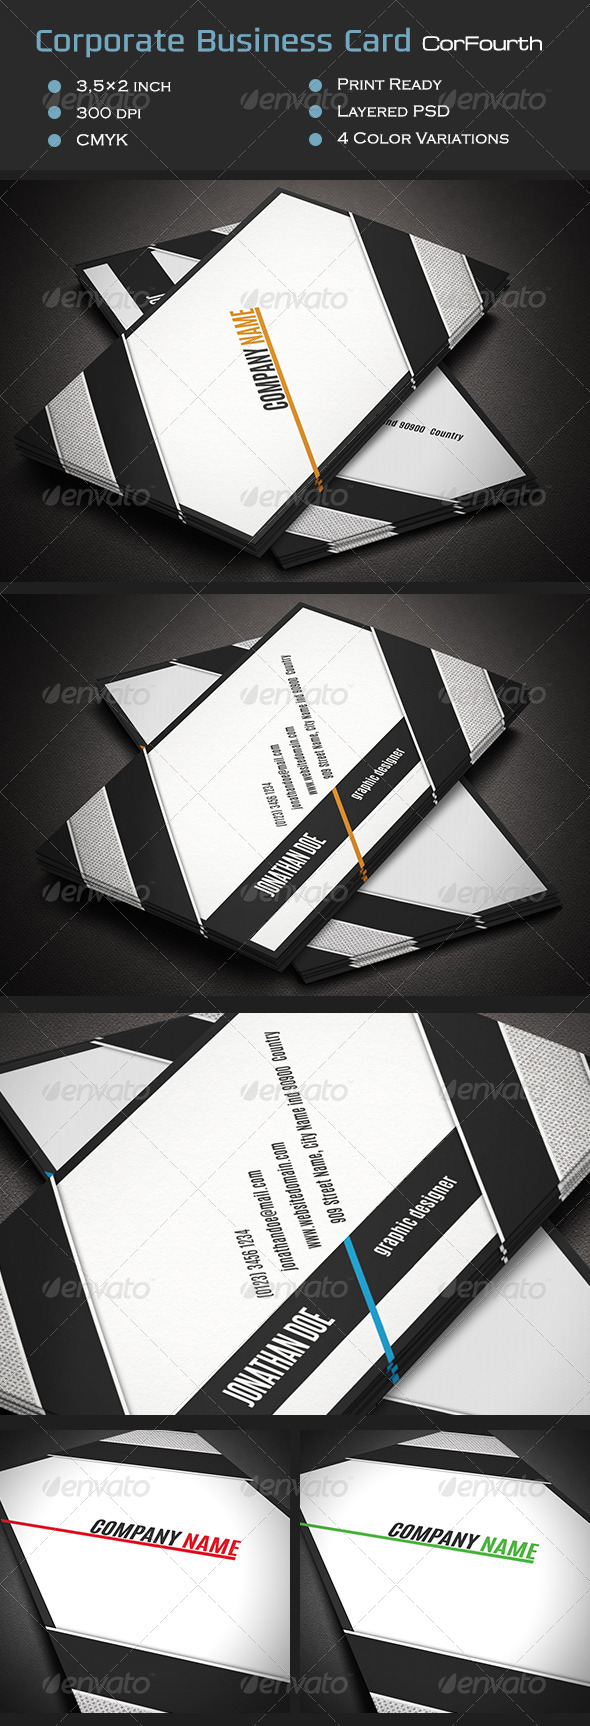 GraphicRiver Corporate Business Card CorFourth 7078381